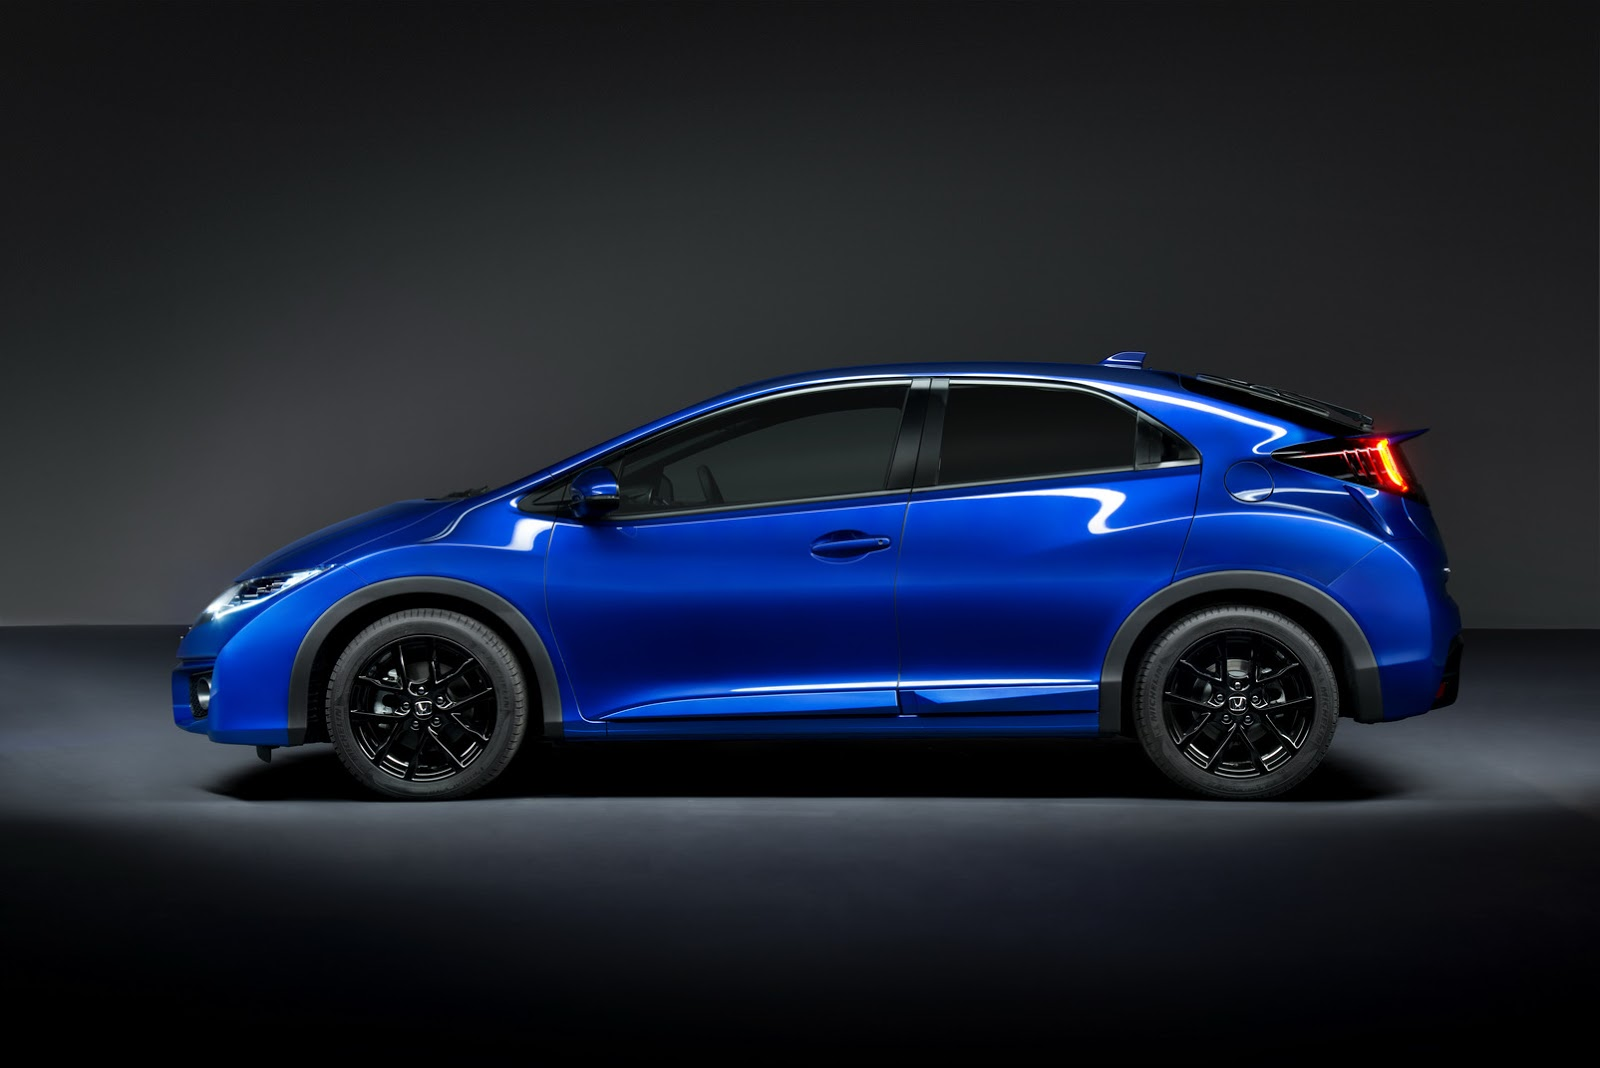 Facelifted 2015 Honda Civic Gets New Type R-Inspired Sports Derivative